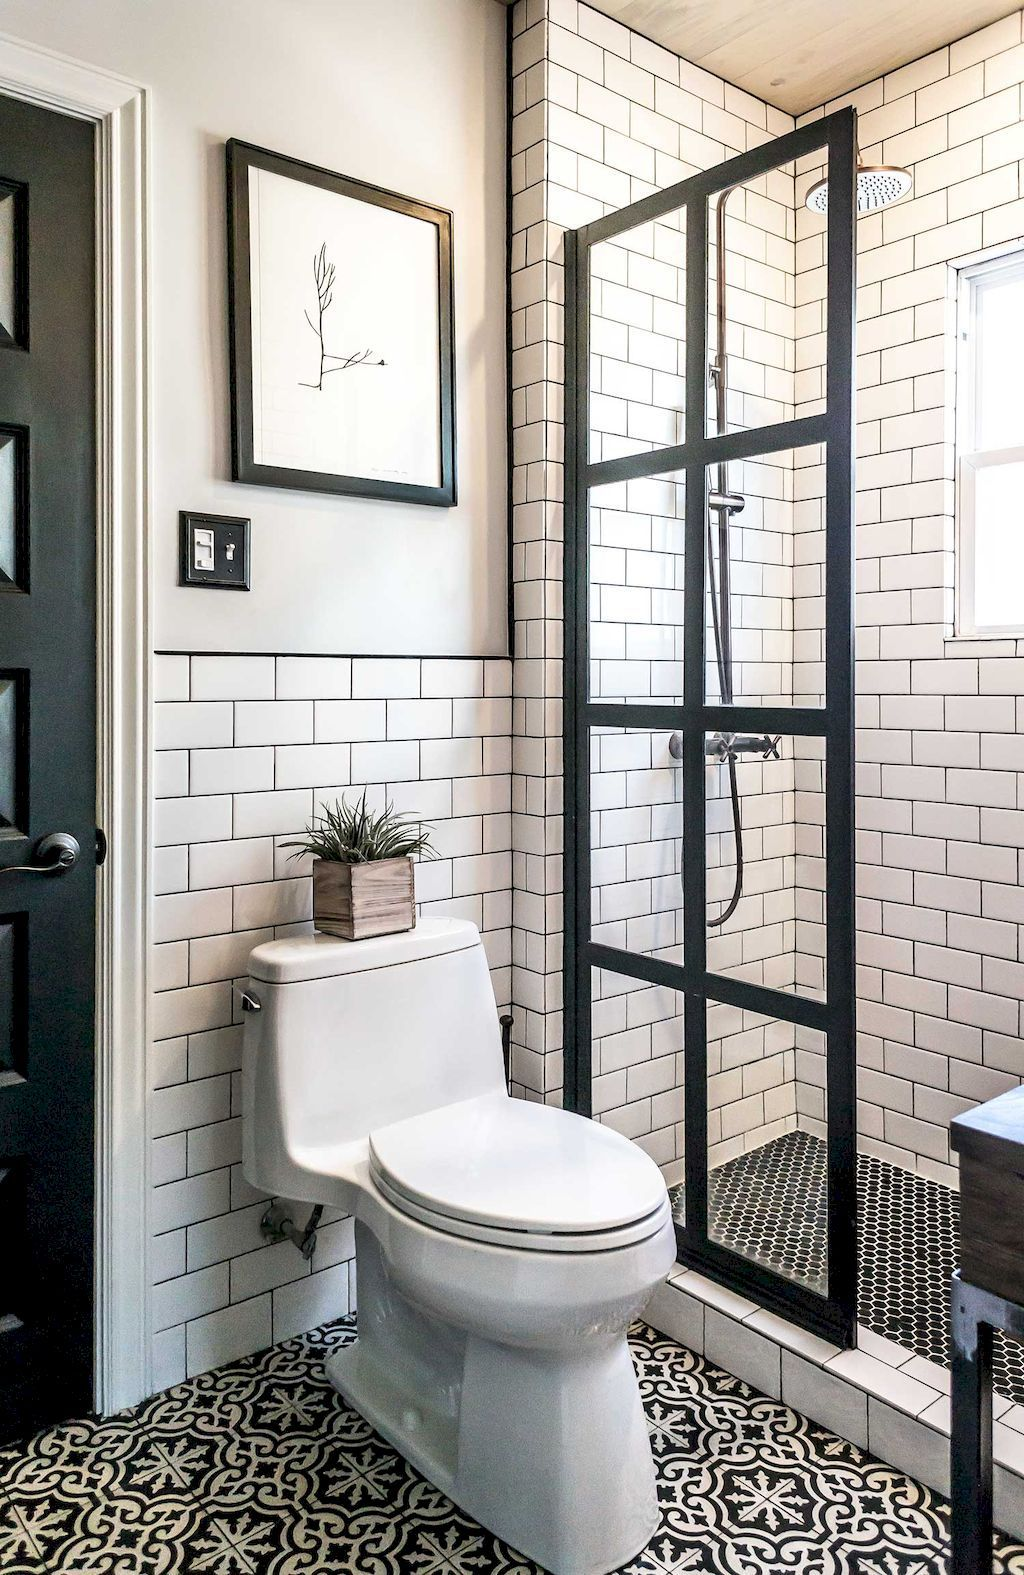 65 Fresh and Cool Small Bathroom Remodel Ideas on A Budget | Small ...